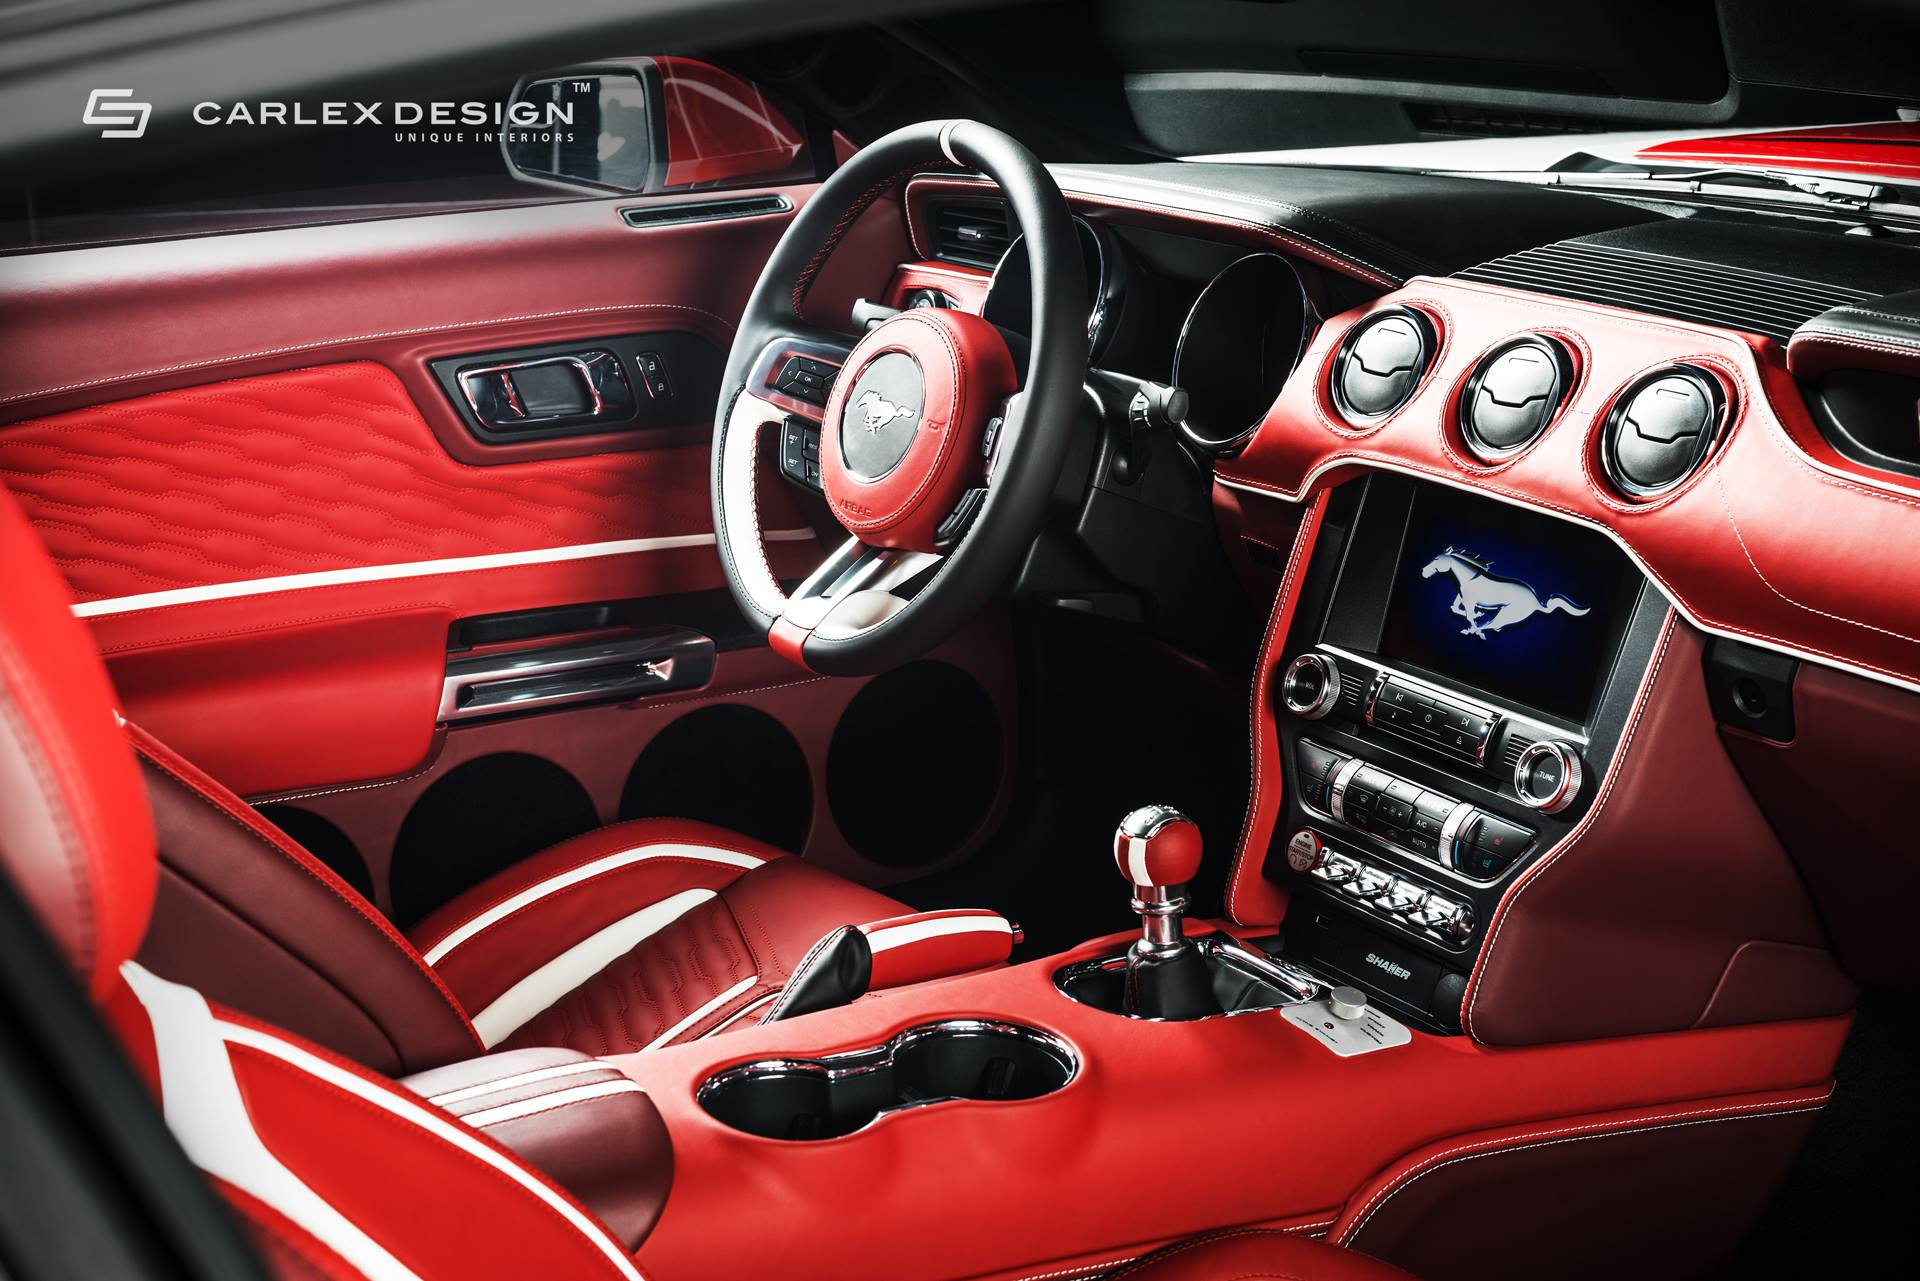 Roush Mustang Gets Blood Red Interior From Carlex